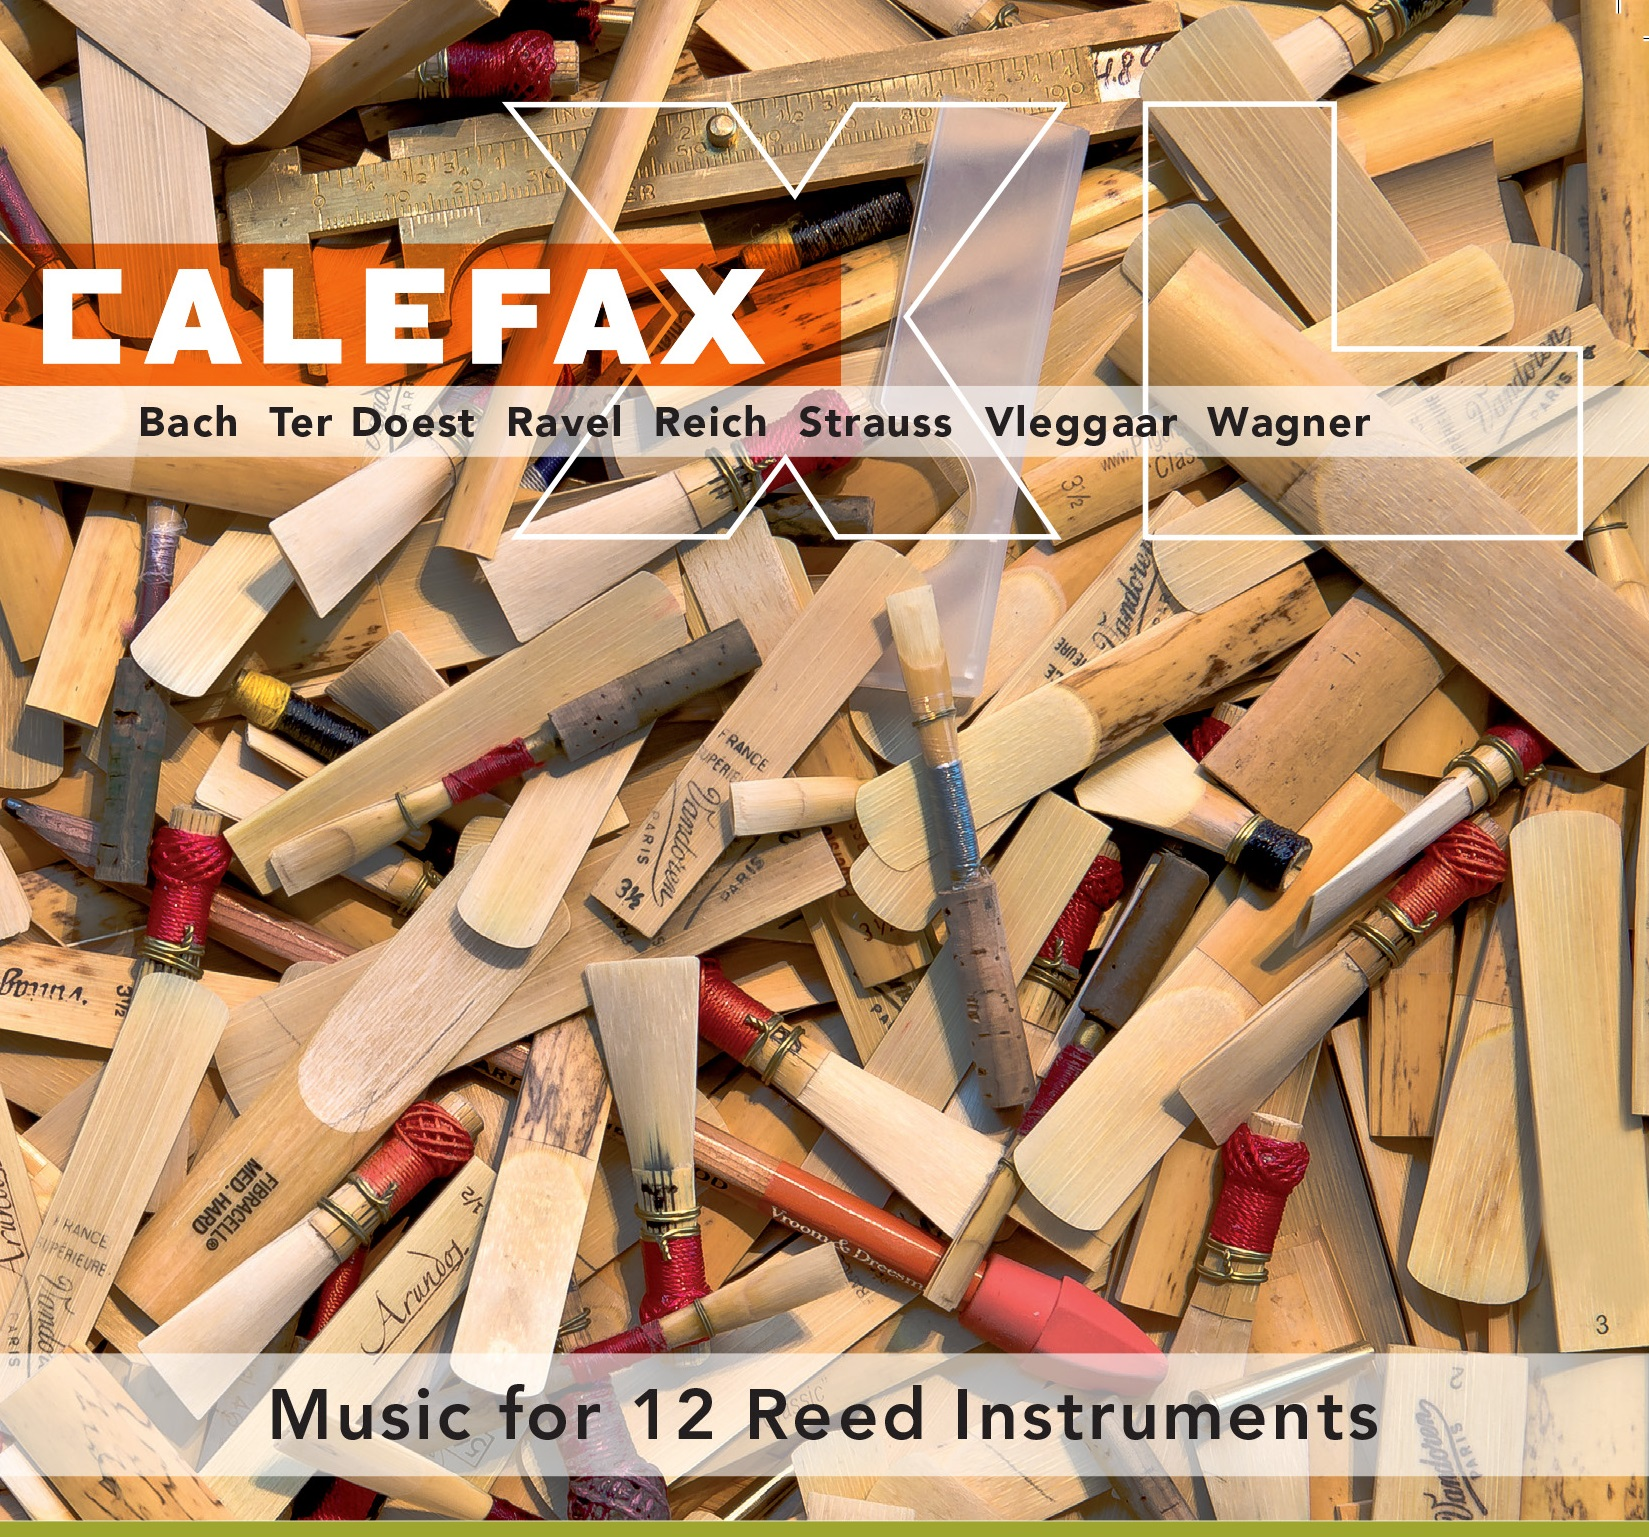 CalefaXL (2011) on RIOJA - Music by Bach, Ter Doest, Ravel, Reich, Strauss, Vleggar and Wagner arranged for 12 Reed Instruments.